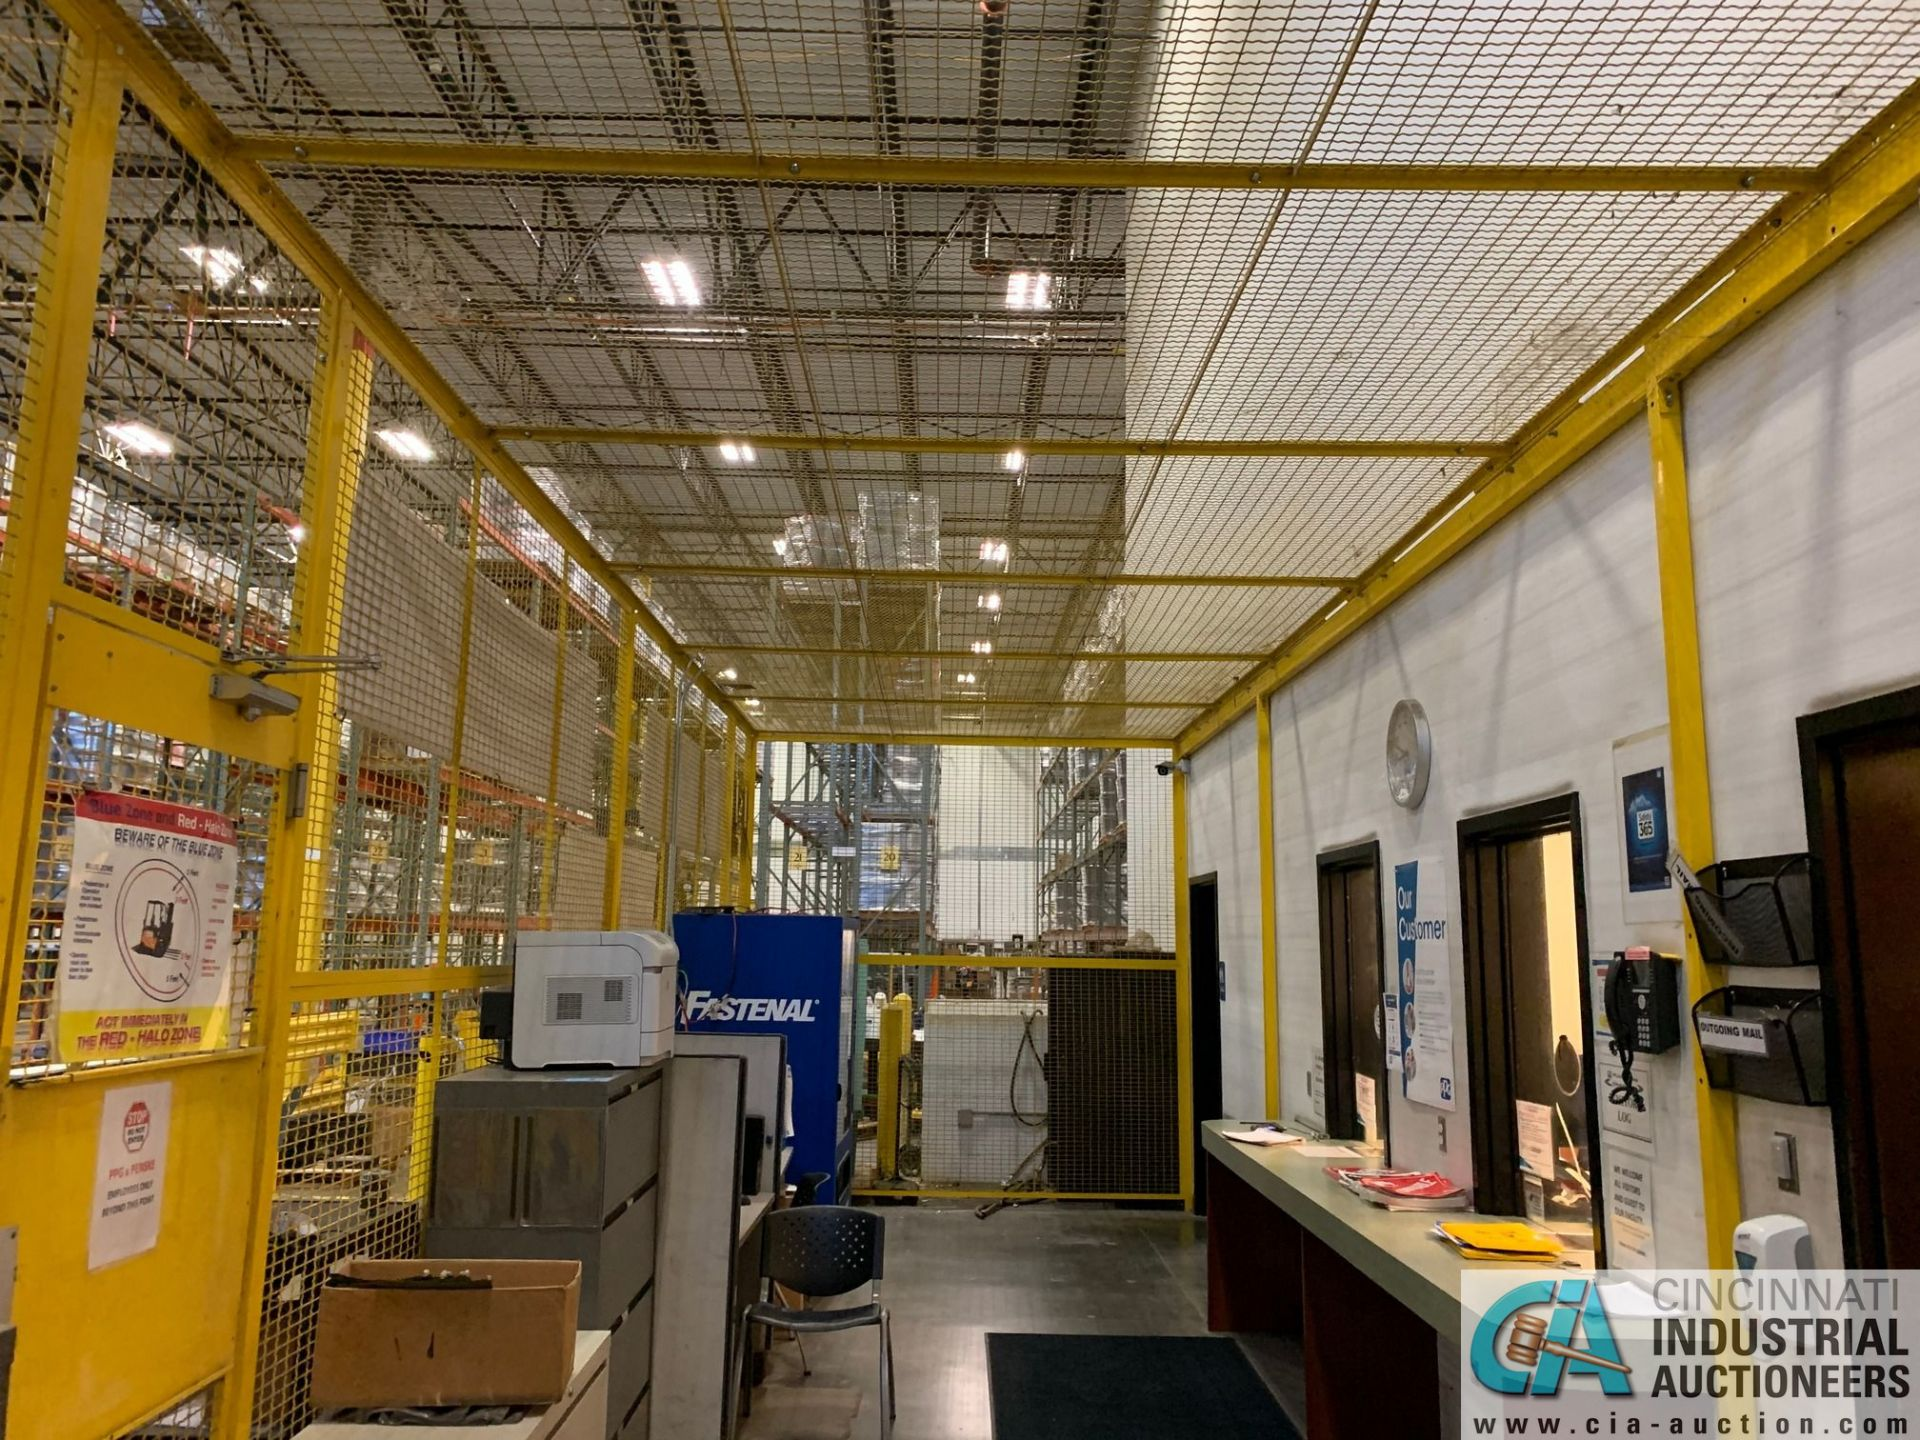 SAFETY CAGE - FRONT DRIVERS (5400 OAKLEY INDUSTRIAL BLVD., FAIRBURN, GA 30213) - Image 6 of 6